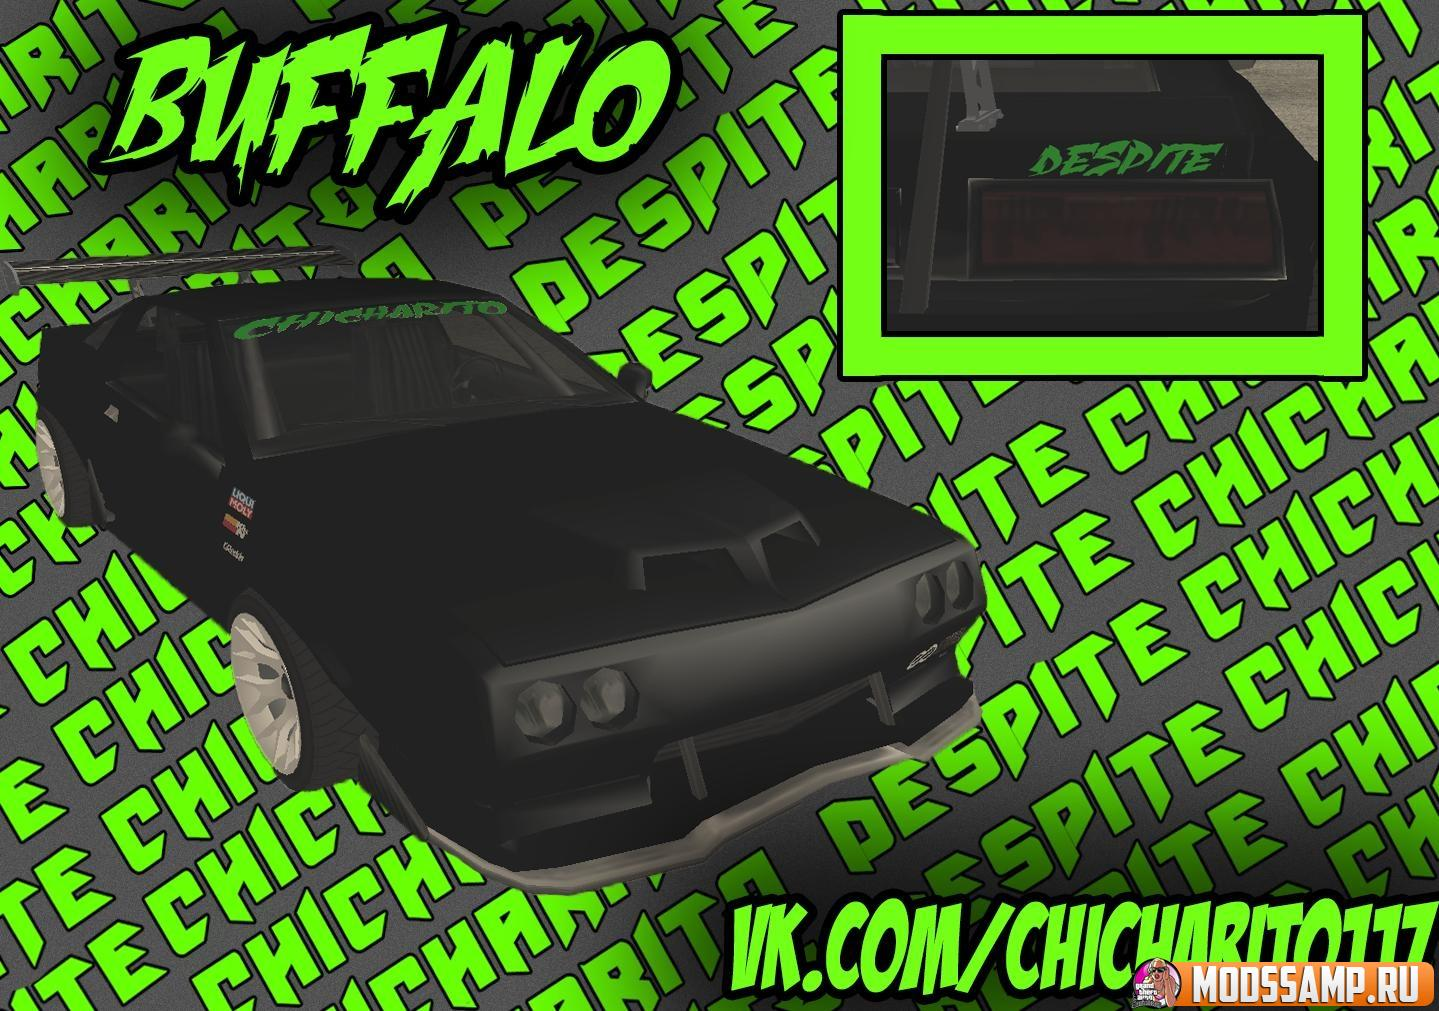 Buffalo от Chicharito Despite для GTA:SA